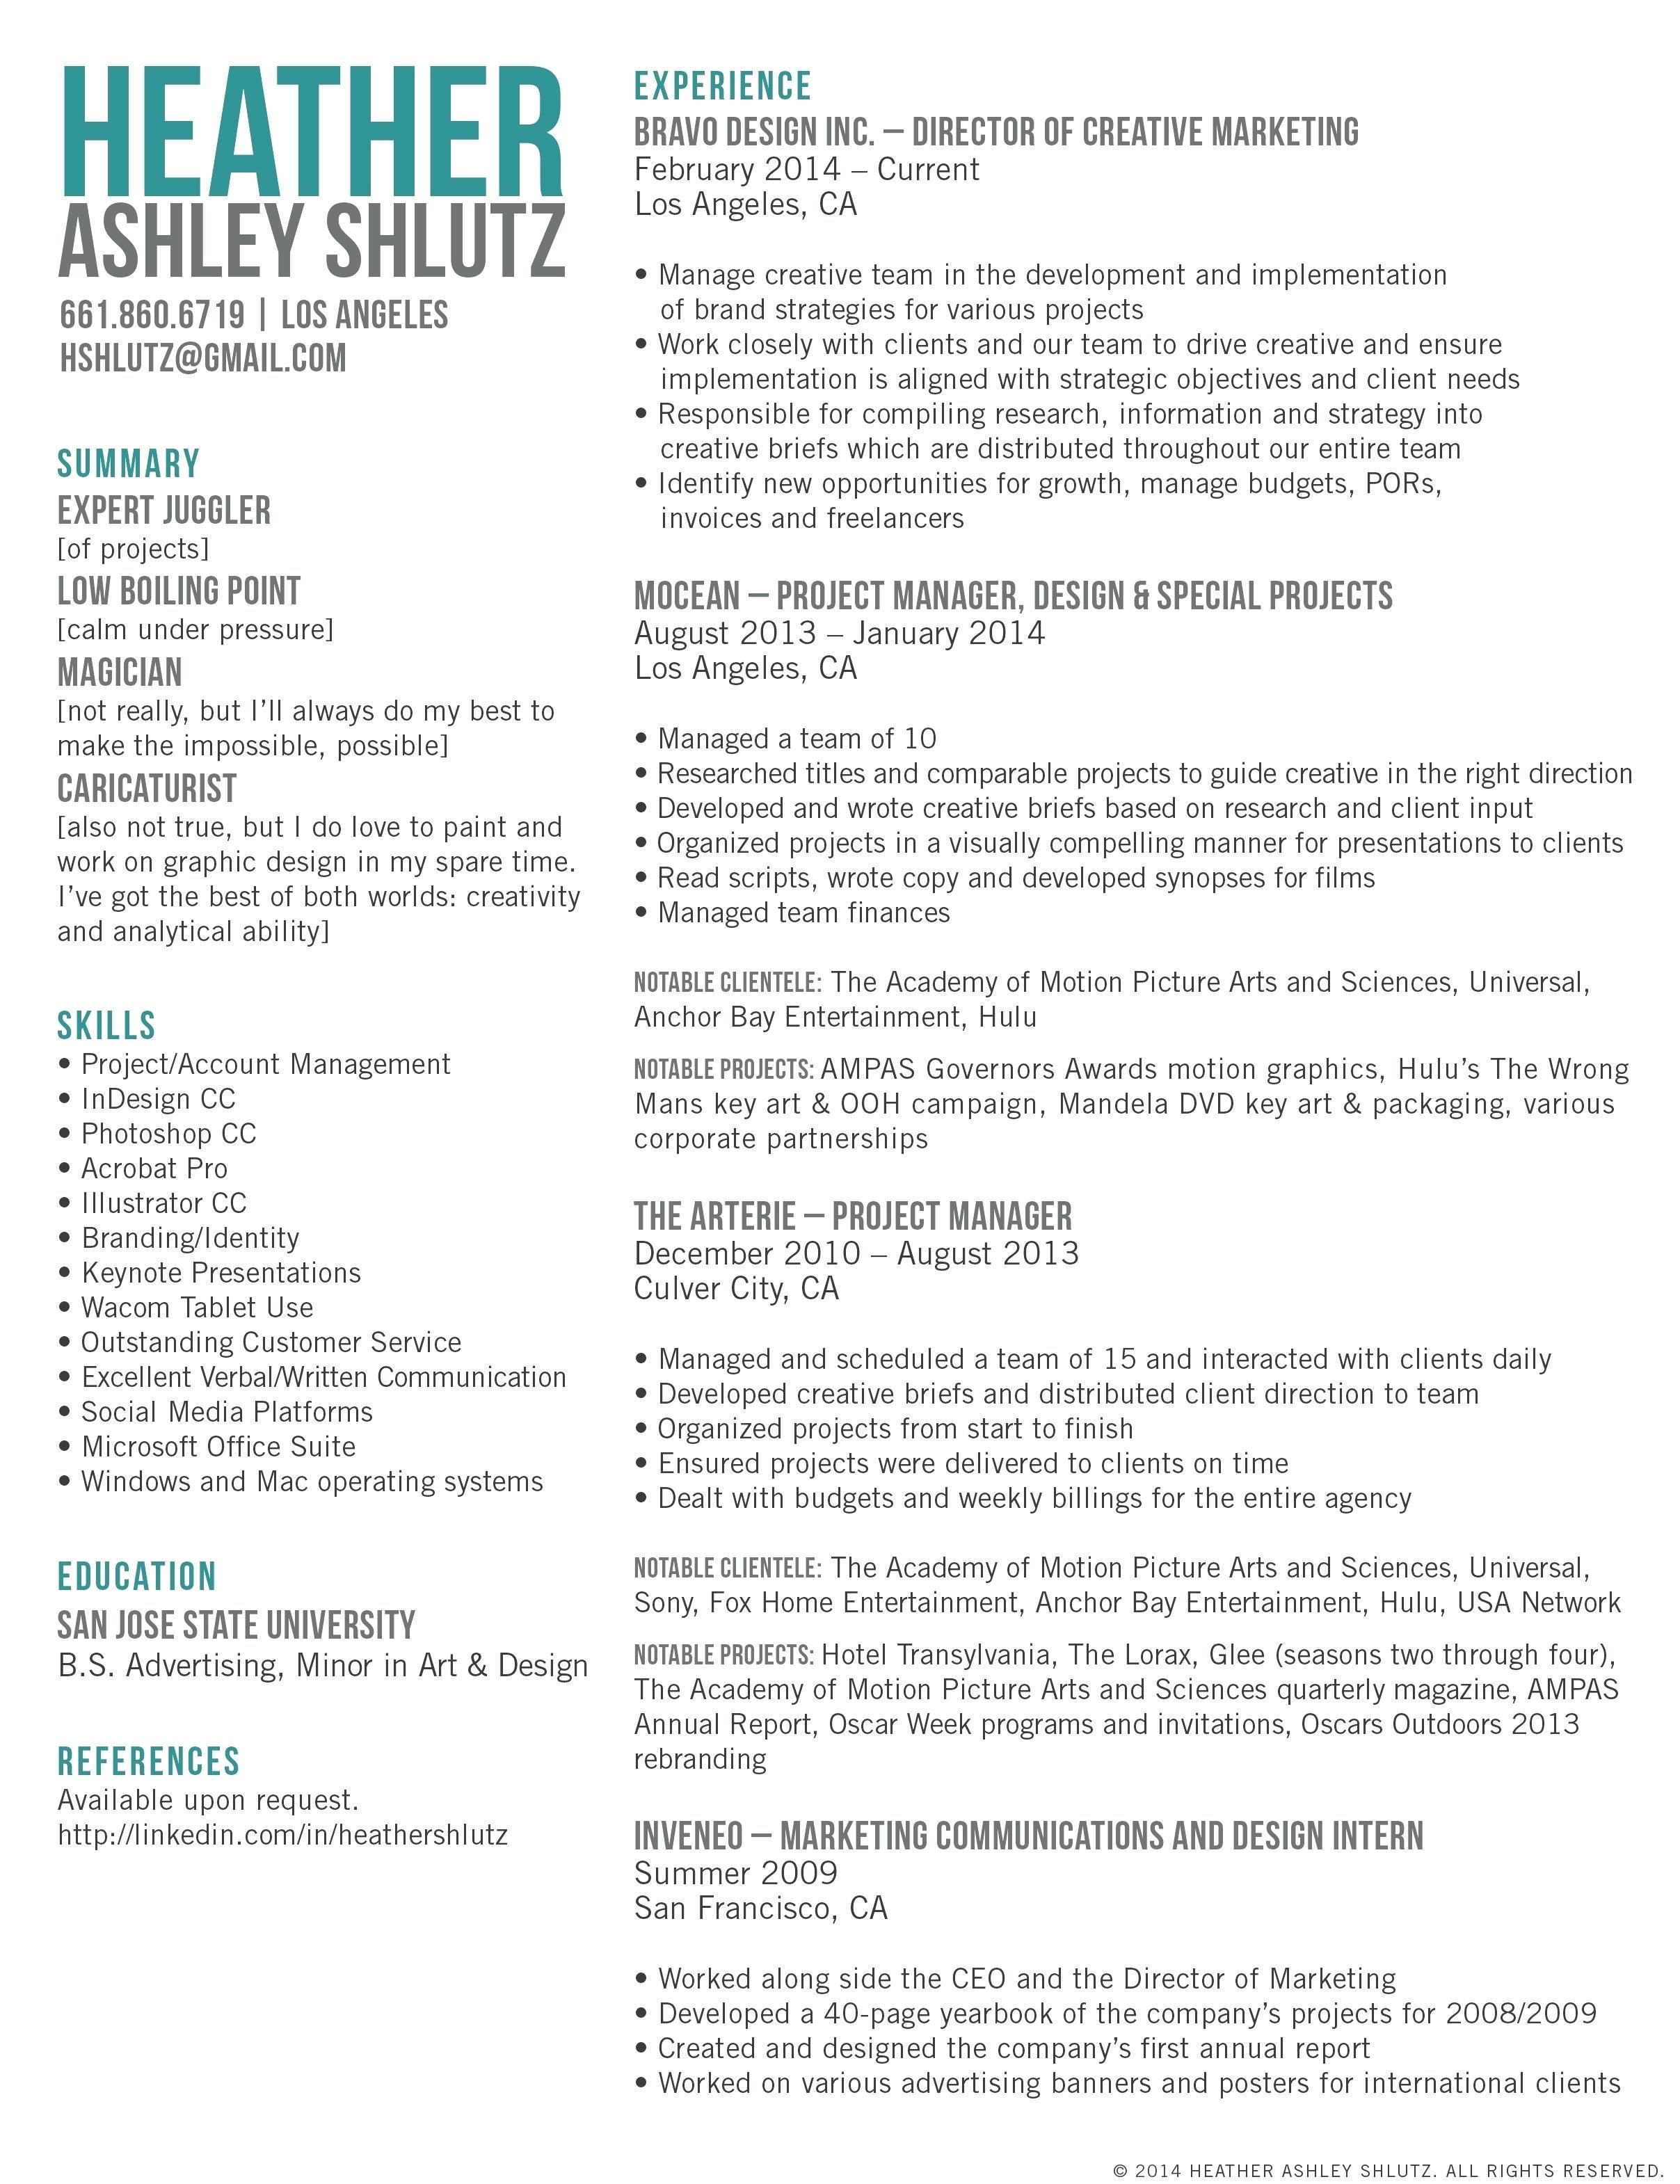 Communications Resume Template Top Marketing Manager Samples Sample Management Assistant Best Marketing Resume Creative Director Career Resume Examples